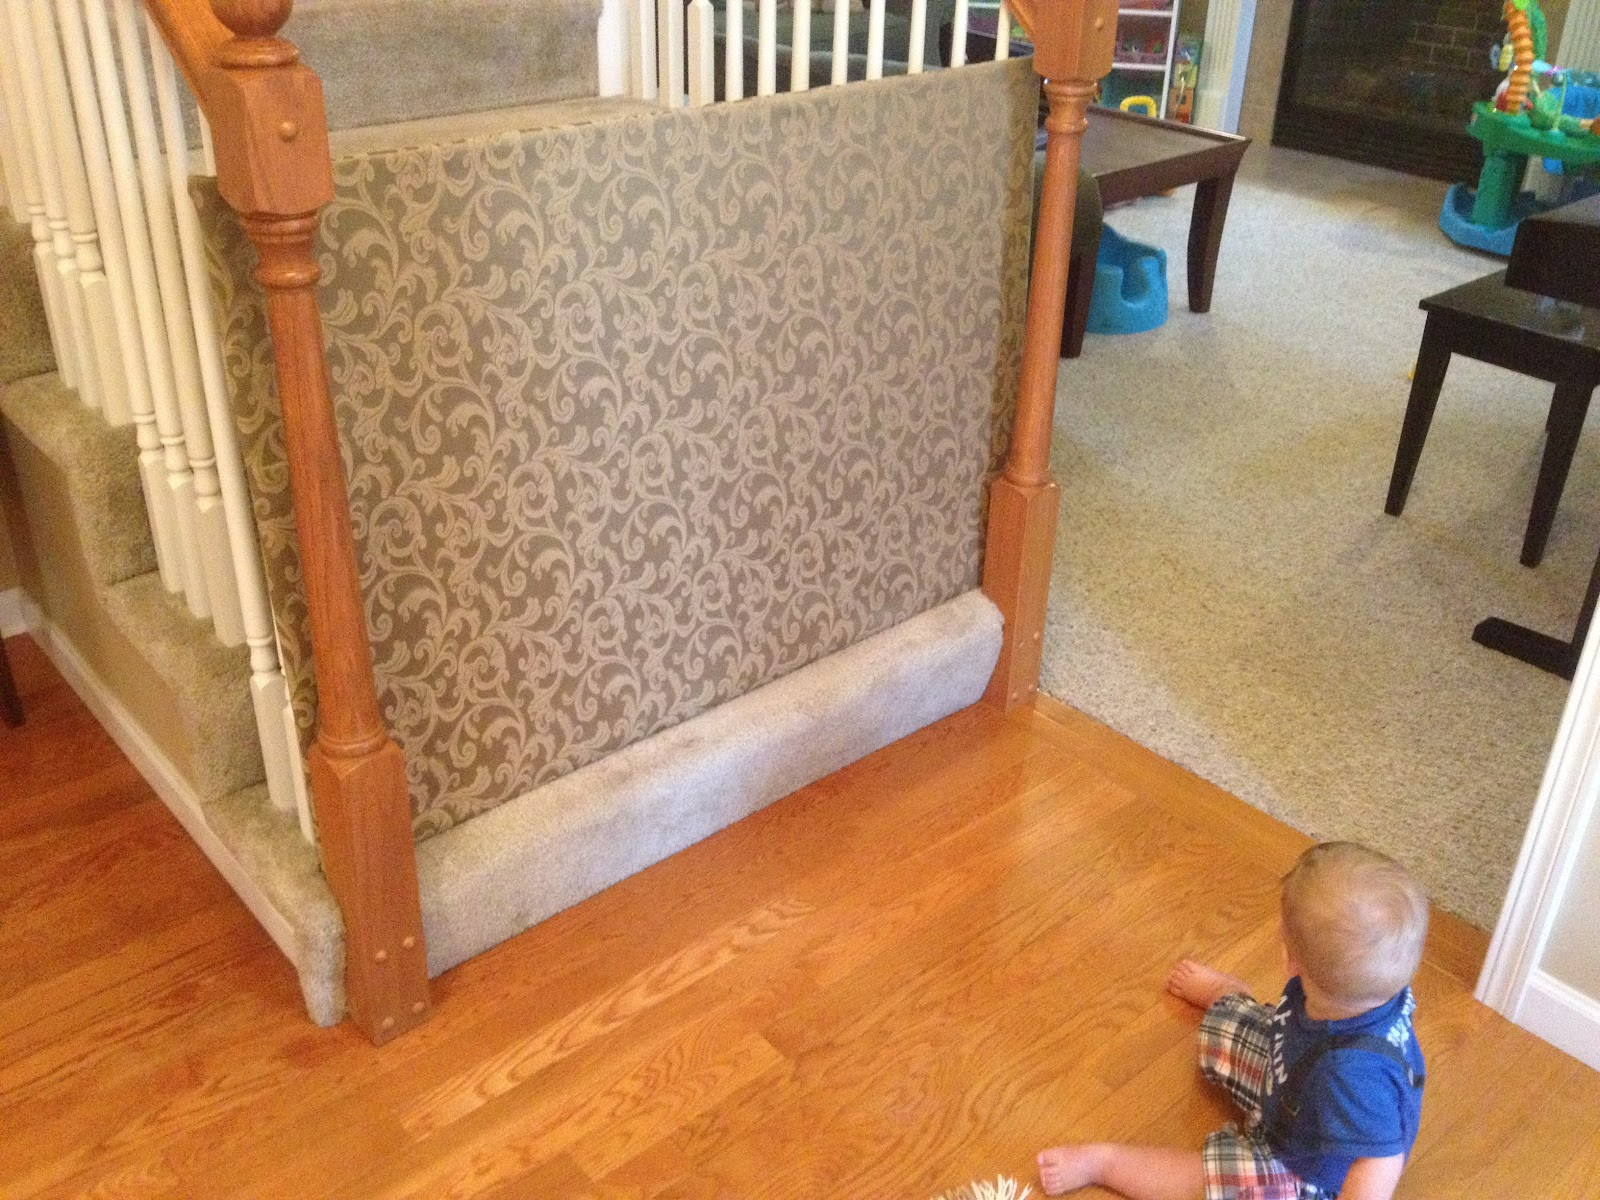 Best ideas about Baby Gates DIY . Save or Pin A Pair of Schues DIY Baby Gate Now.